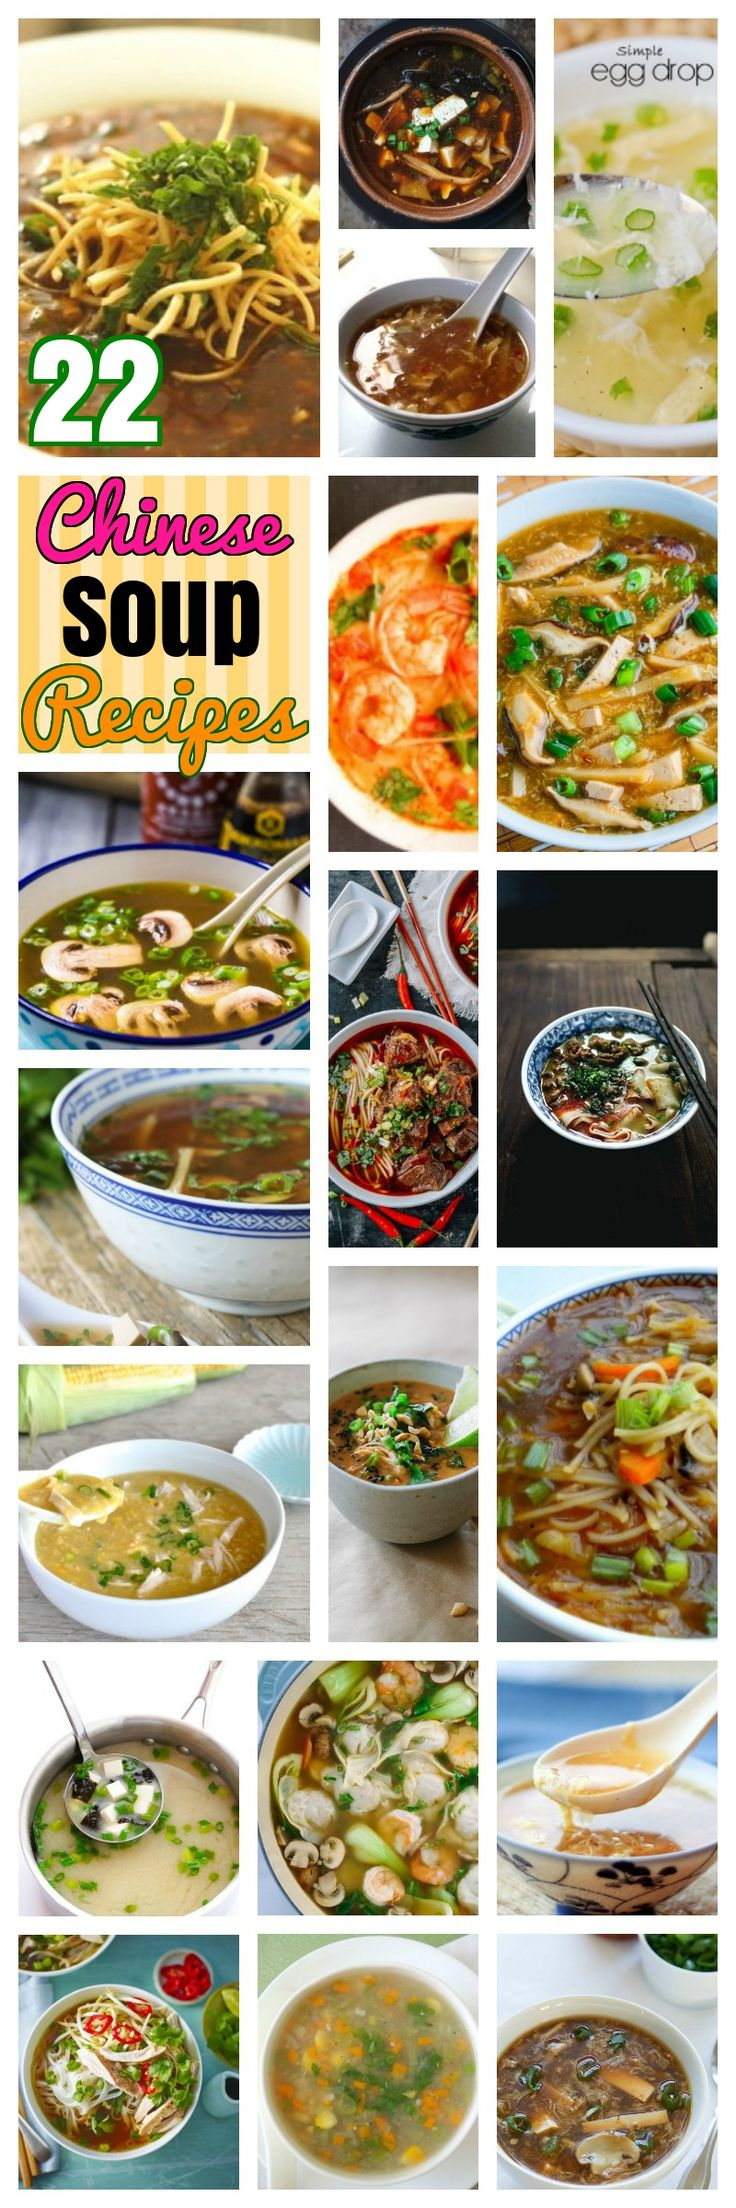 22 Immensely Delicious Chinese Soup Recipes. Easy spicy and appetizing Chinese egg chicken and vegetarian noodle soup recipes. Some Traditional and herbal, Wonton and Manchow soup recipes too..